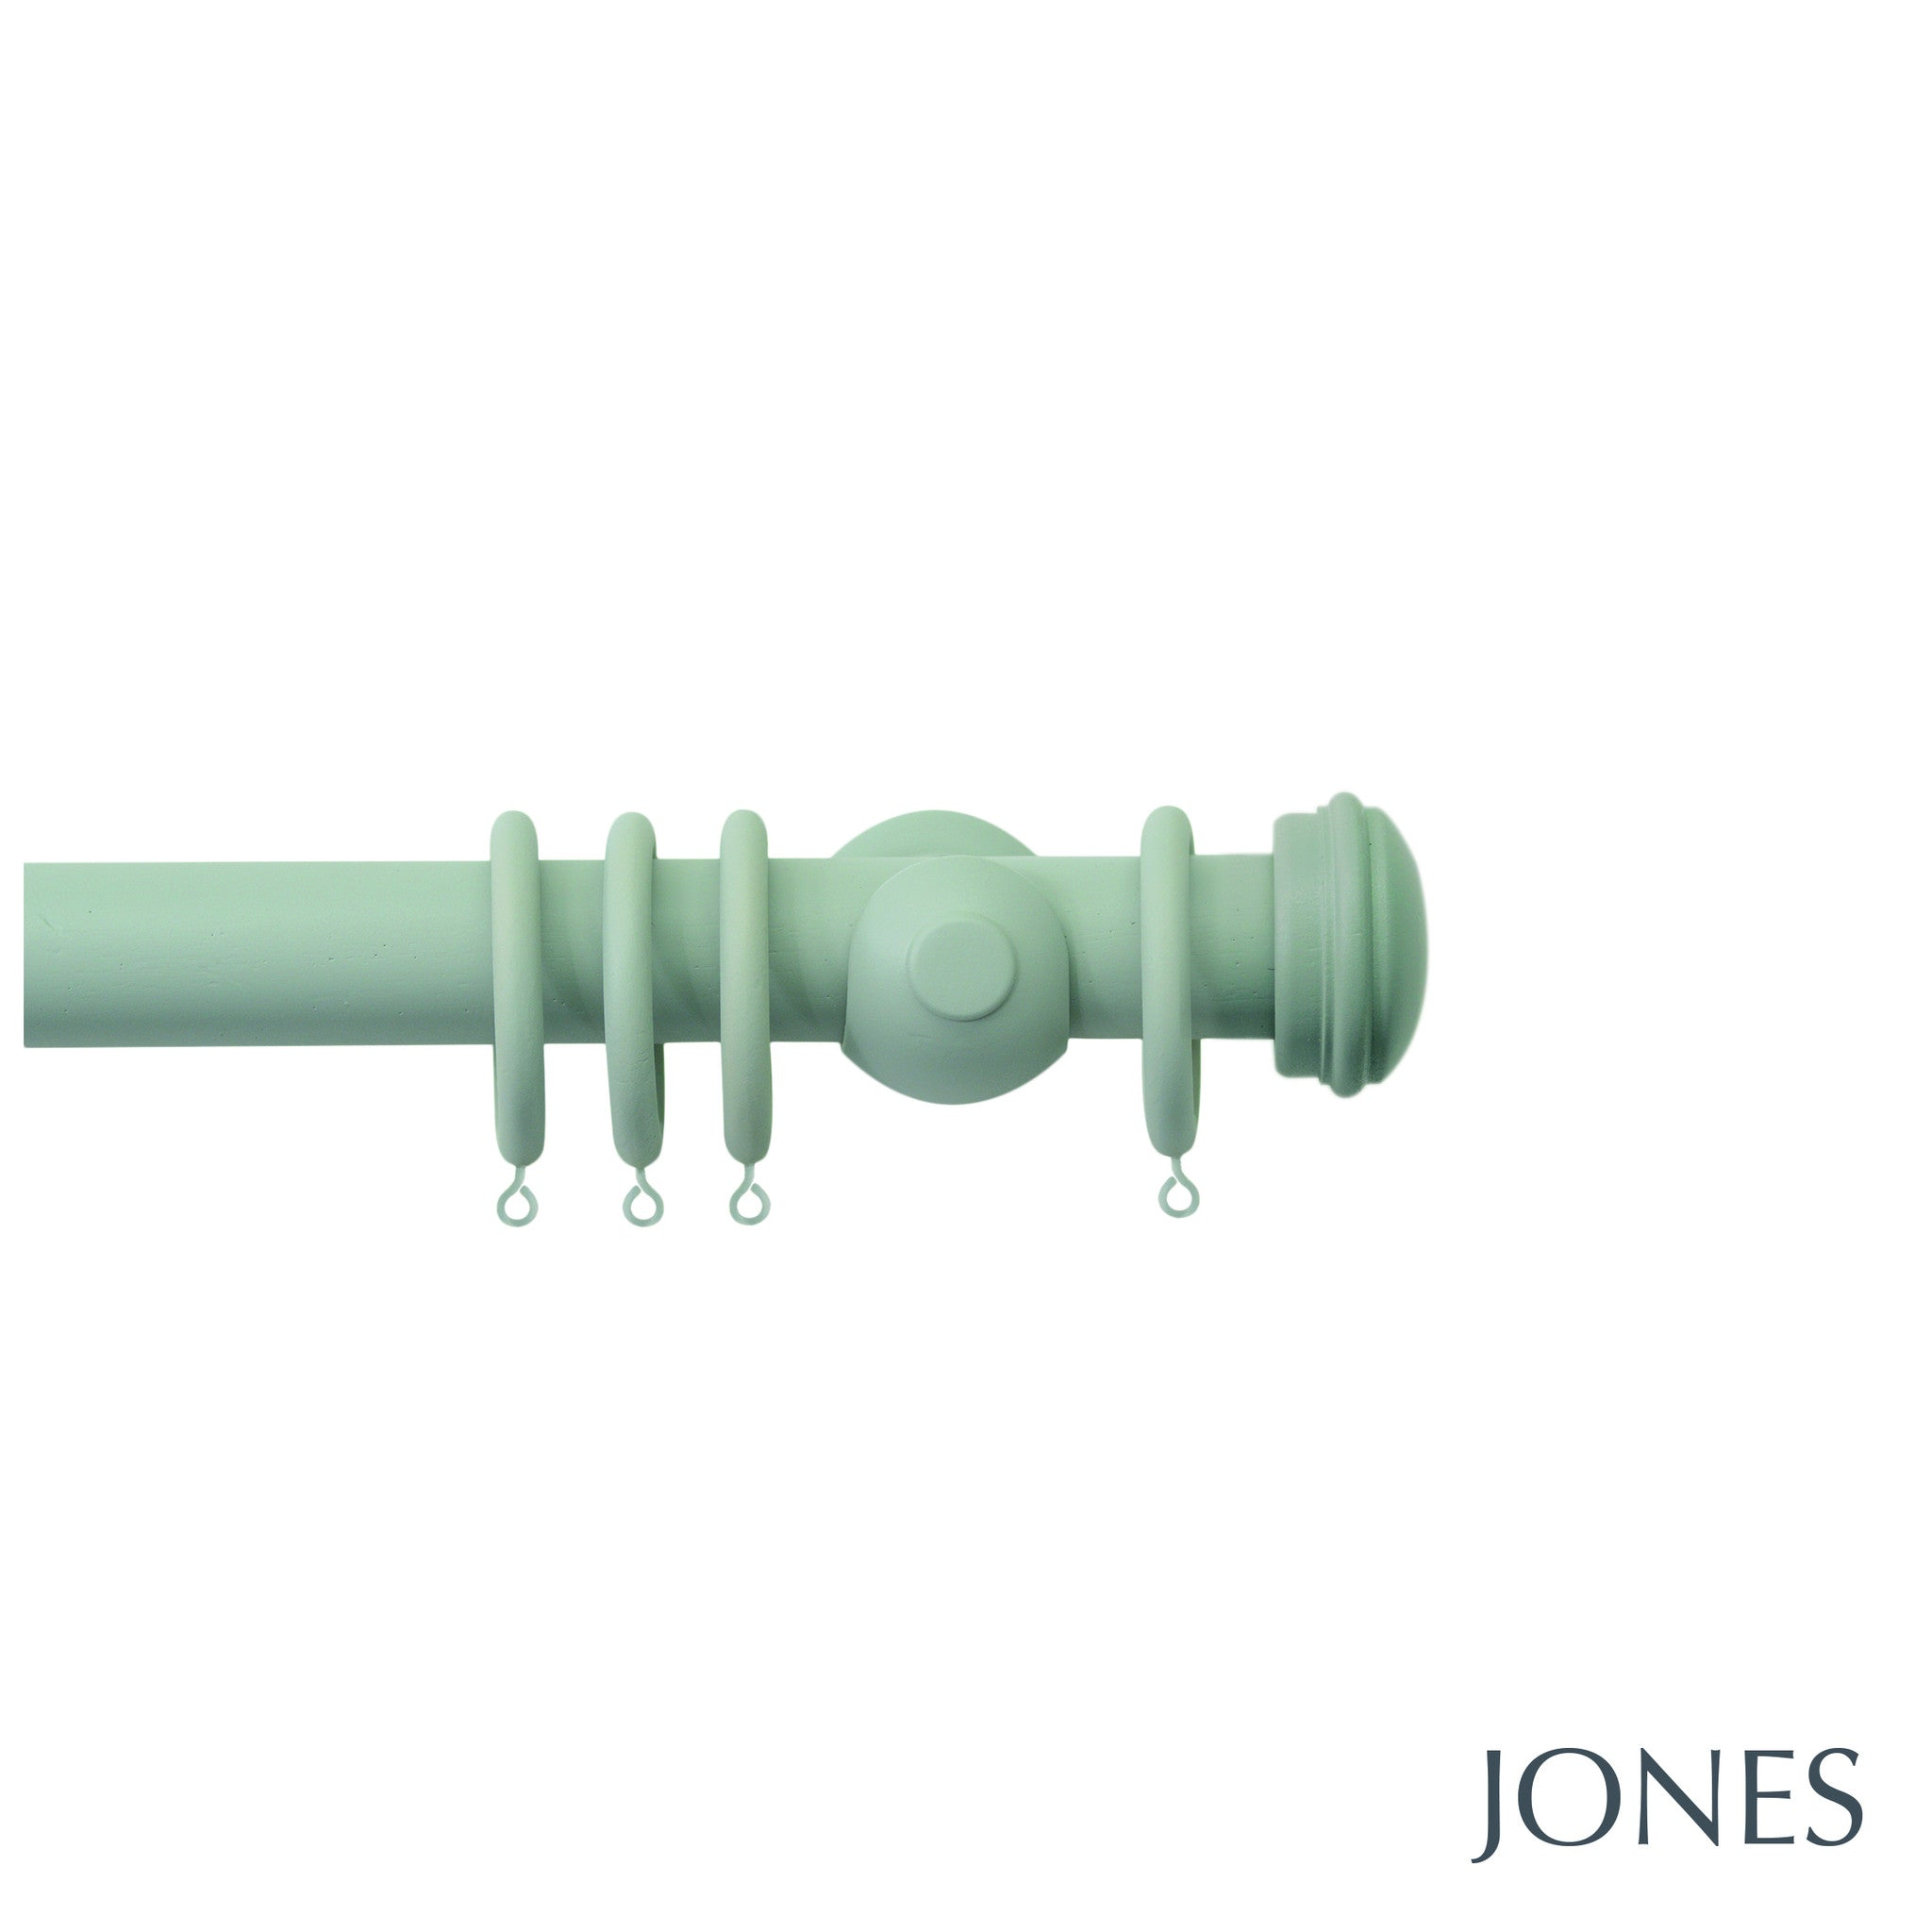 seychelles poles - end cap finials - 40mm - Applemoon Interiors